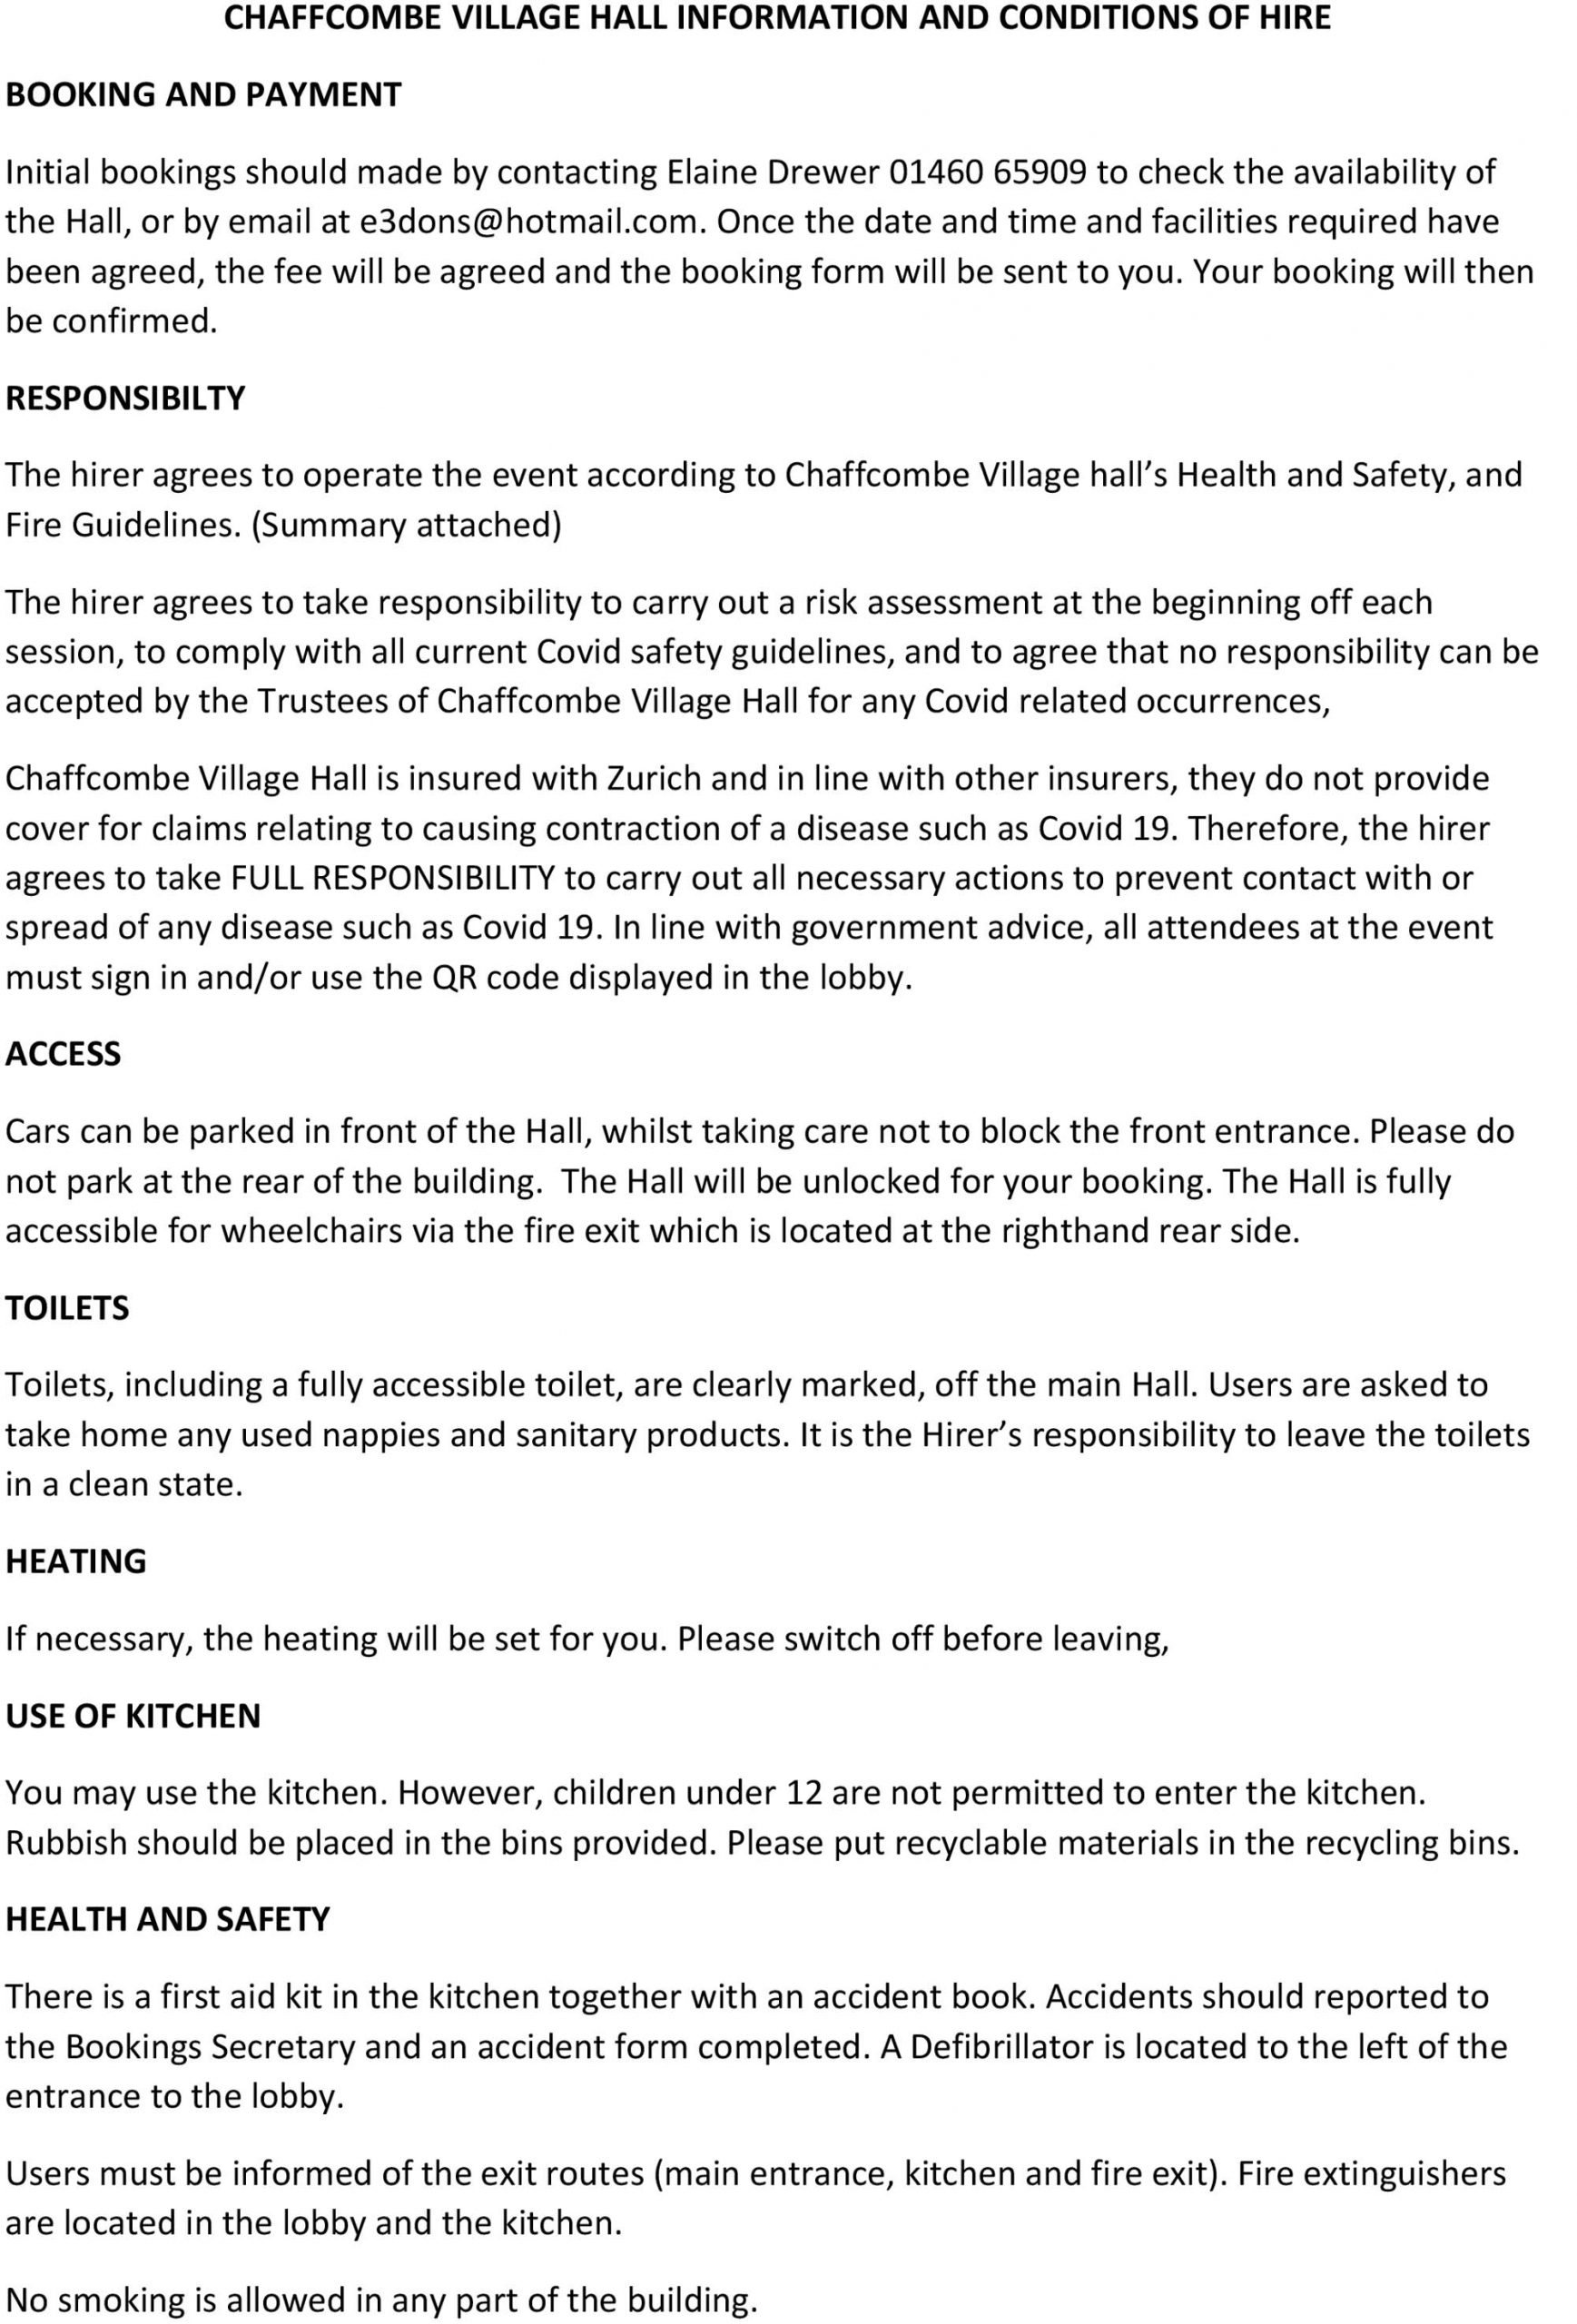 Hall Hiring Conditions